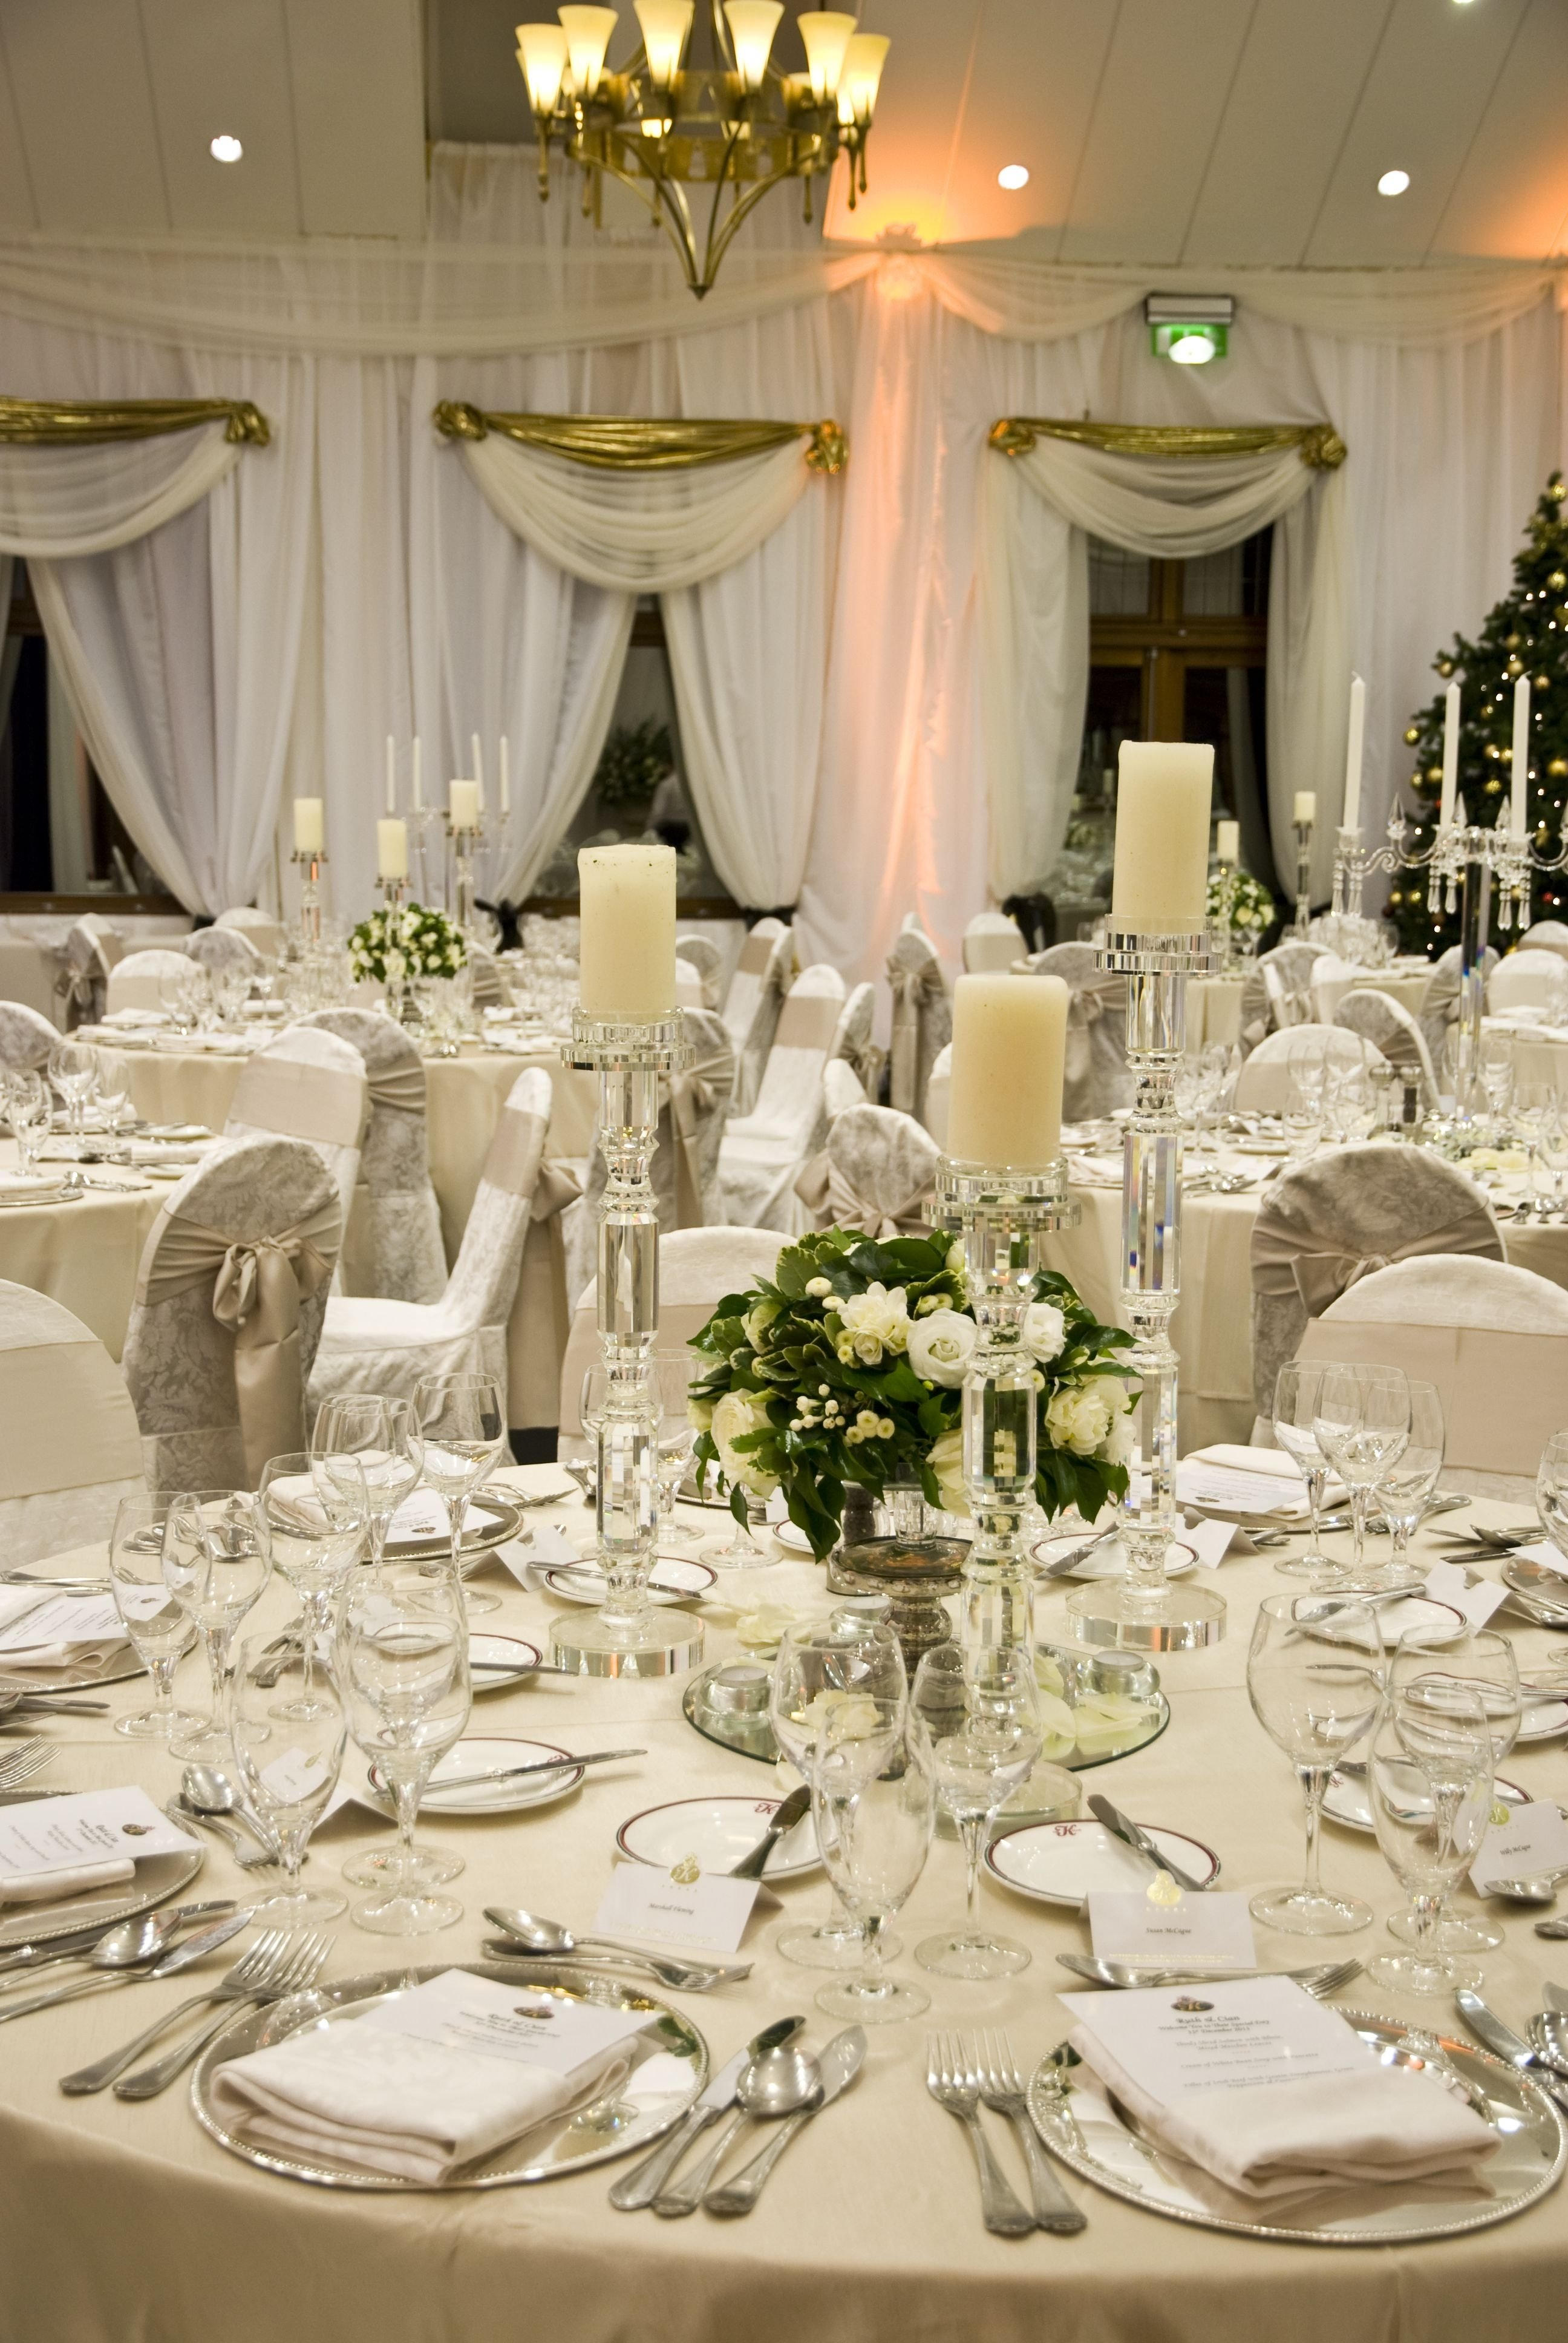 10 Cute Table Setting Ideas For Wedding a gorgeous wedding table setting in the k club the neutral tones 2021